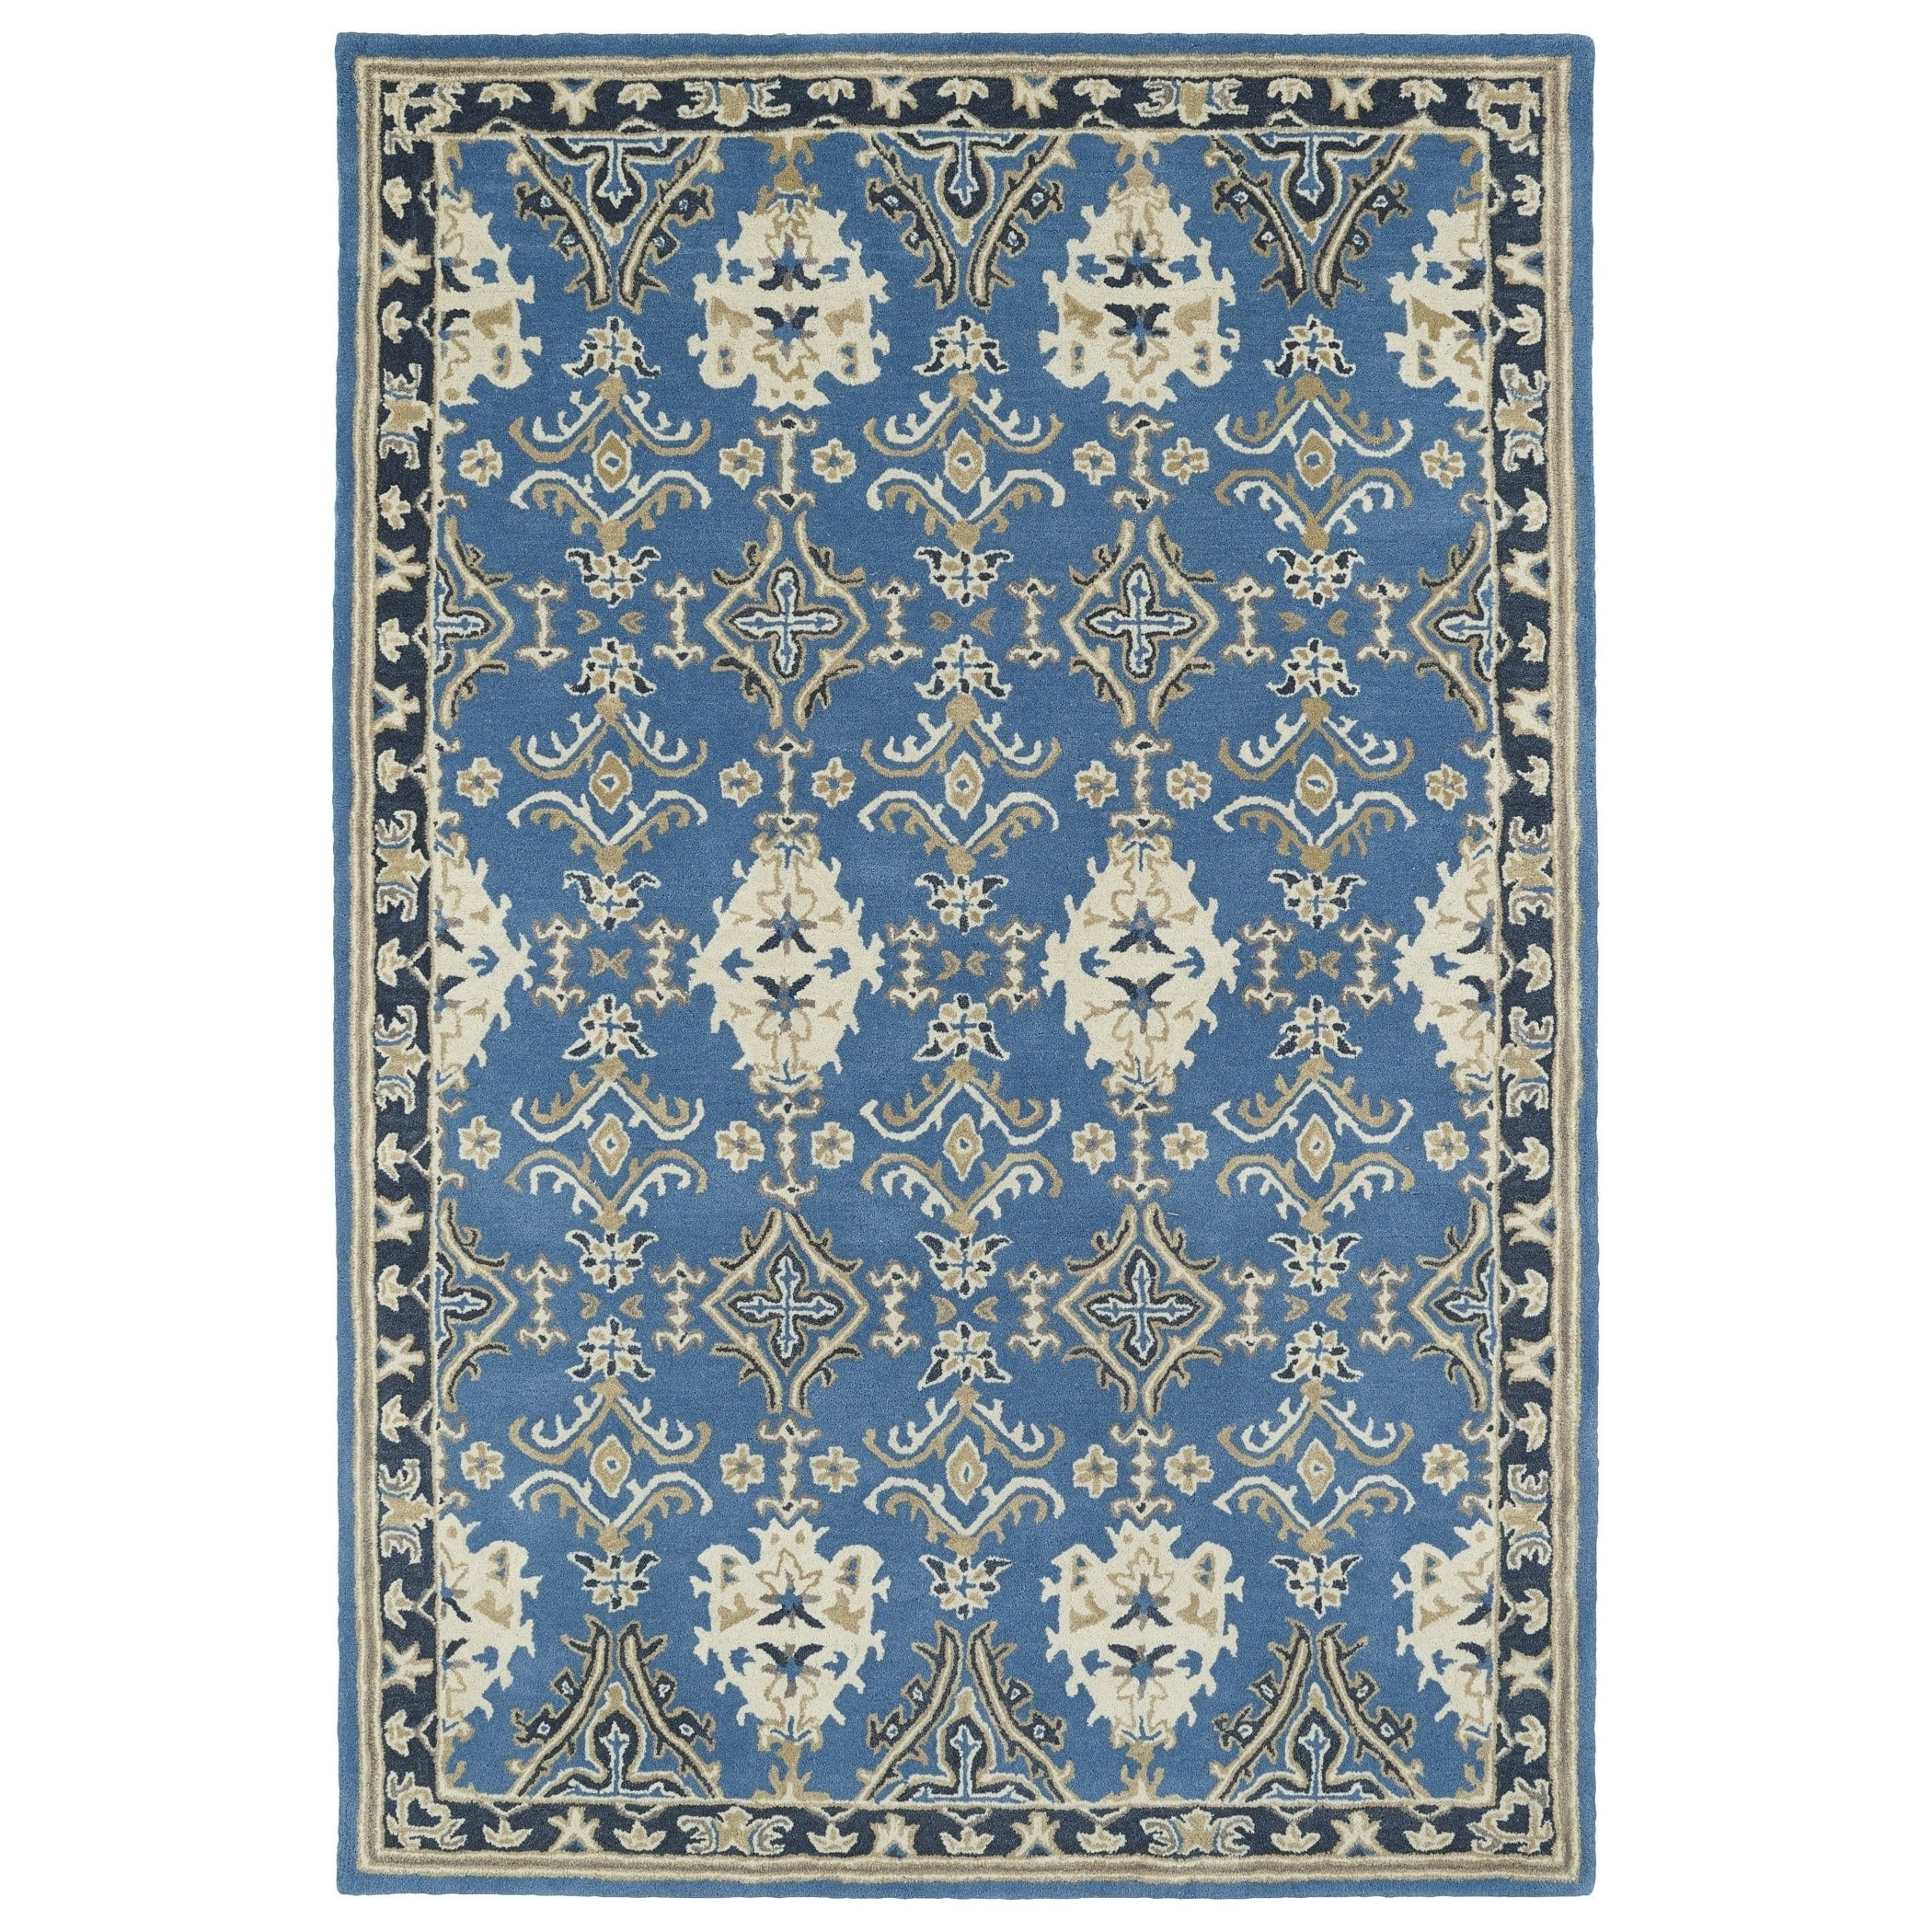 Hand-Tufted Perry Imperial Blue Wool Rug - 9 x 12 (90 x 120)